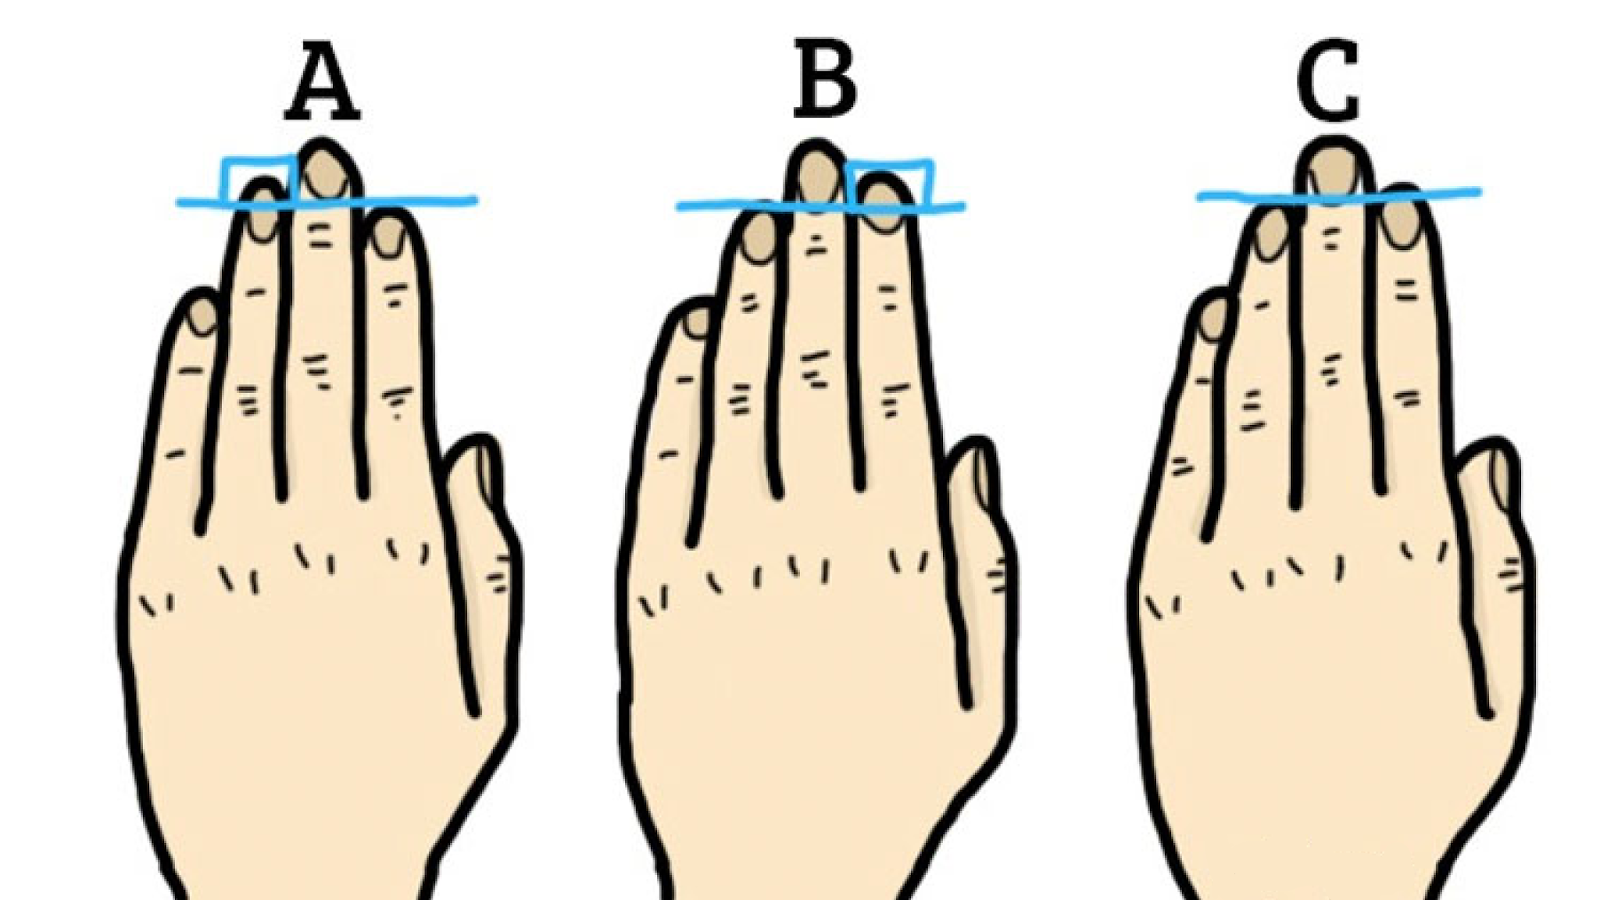 Finger length and the casanova pattern